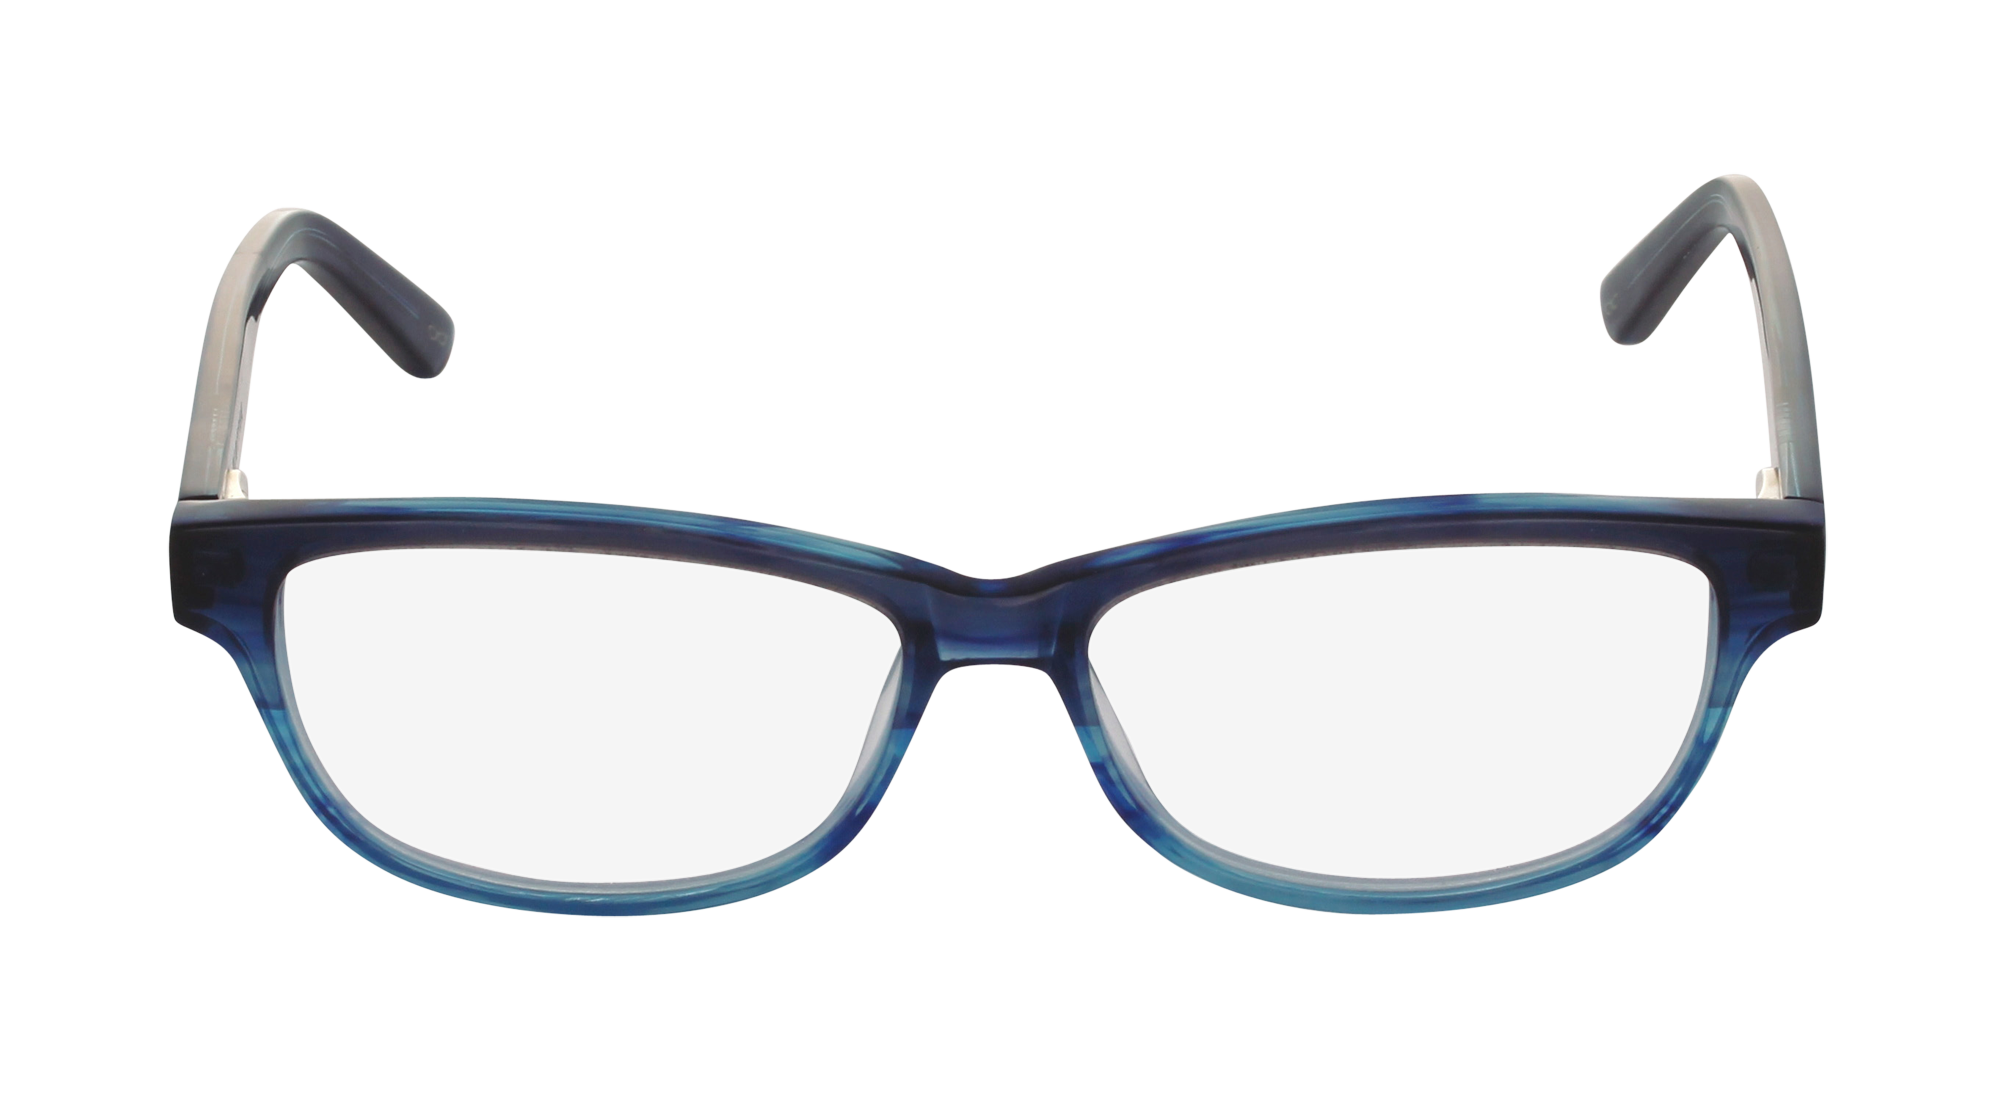 royalty free library Png images download free. 90s clipart sunglasses